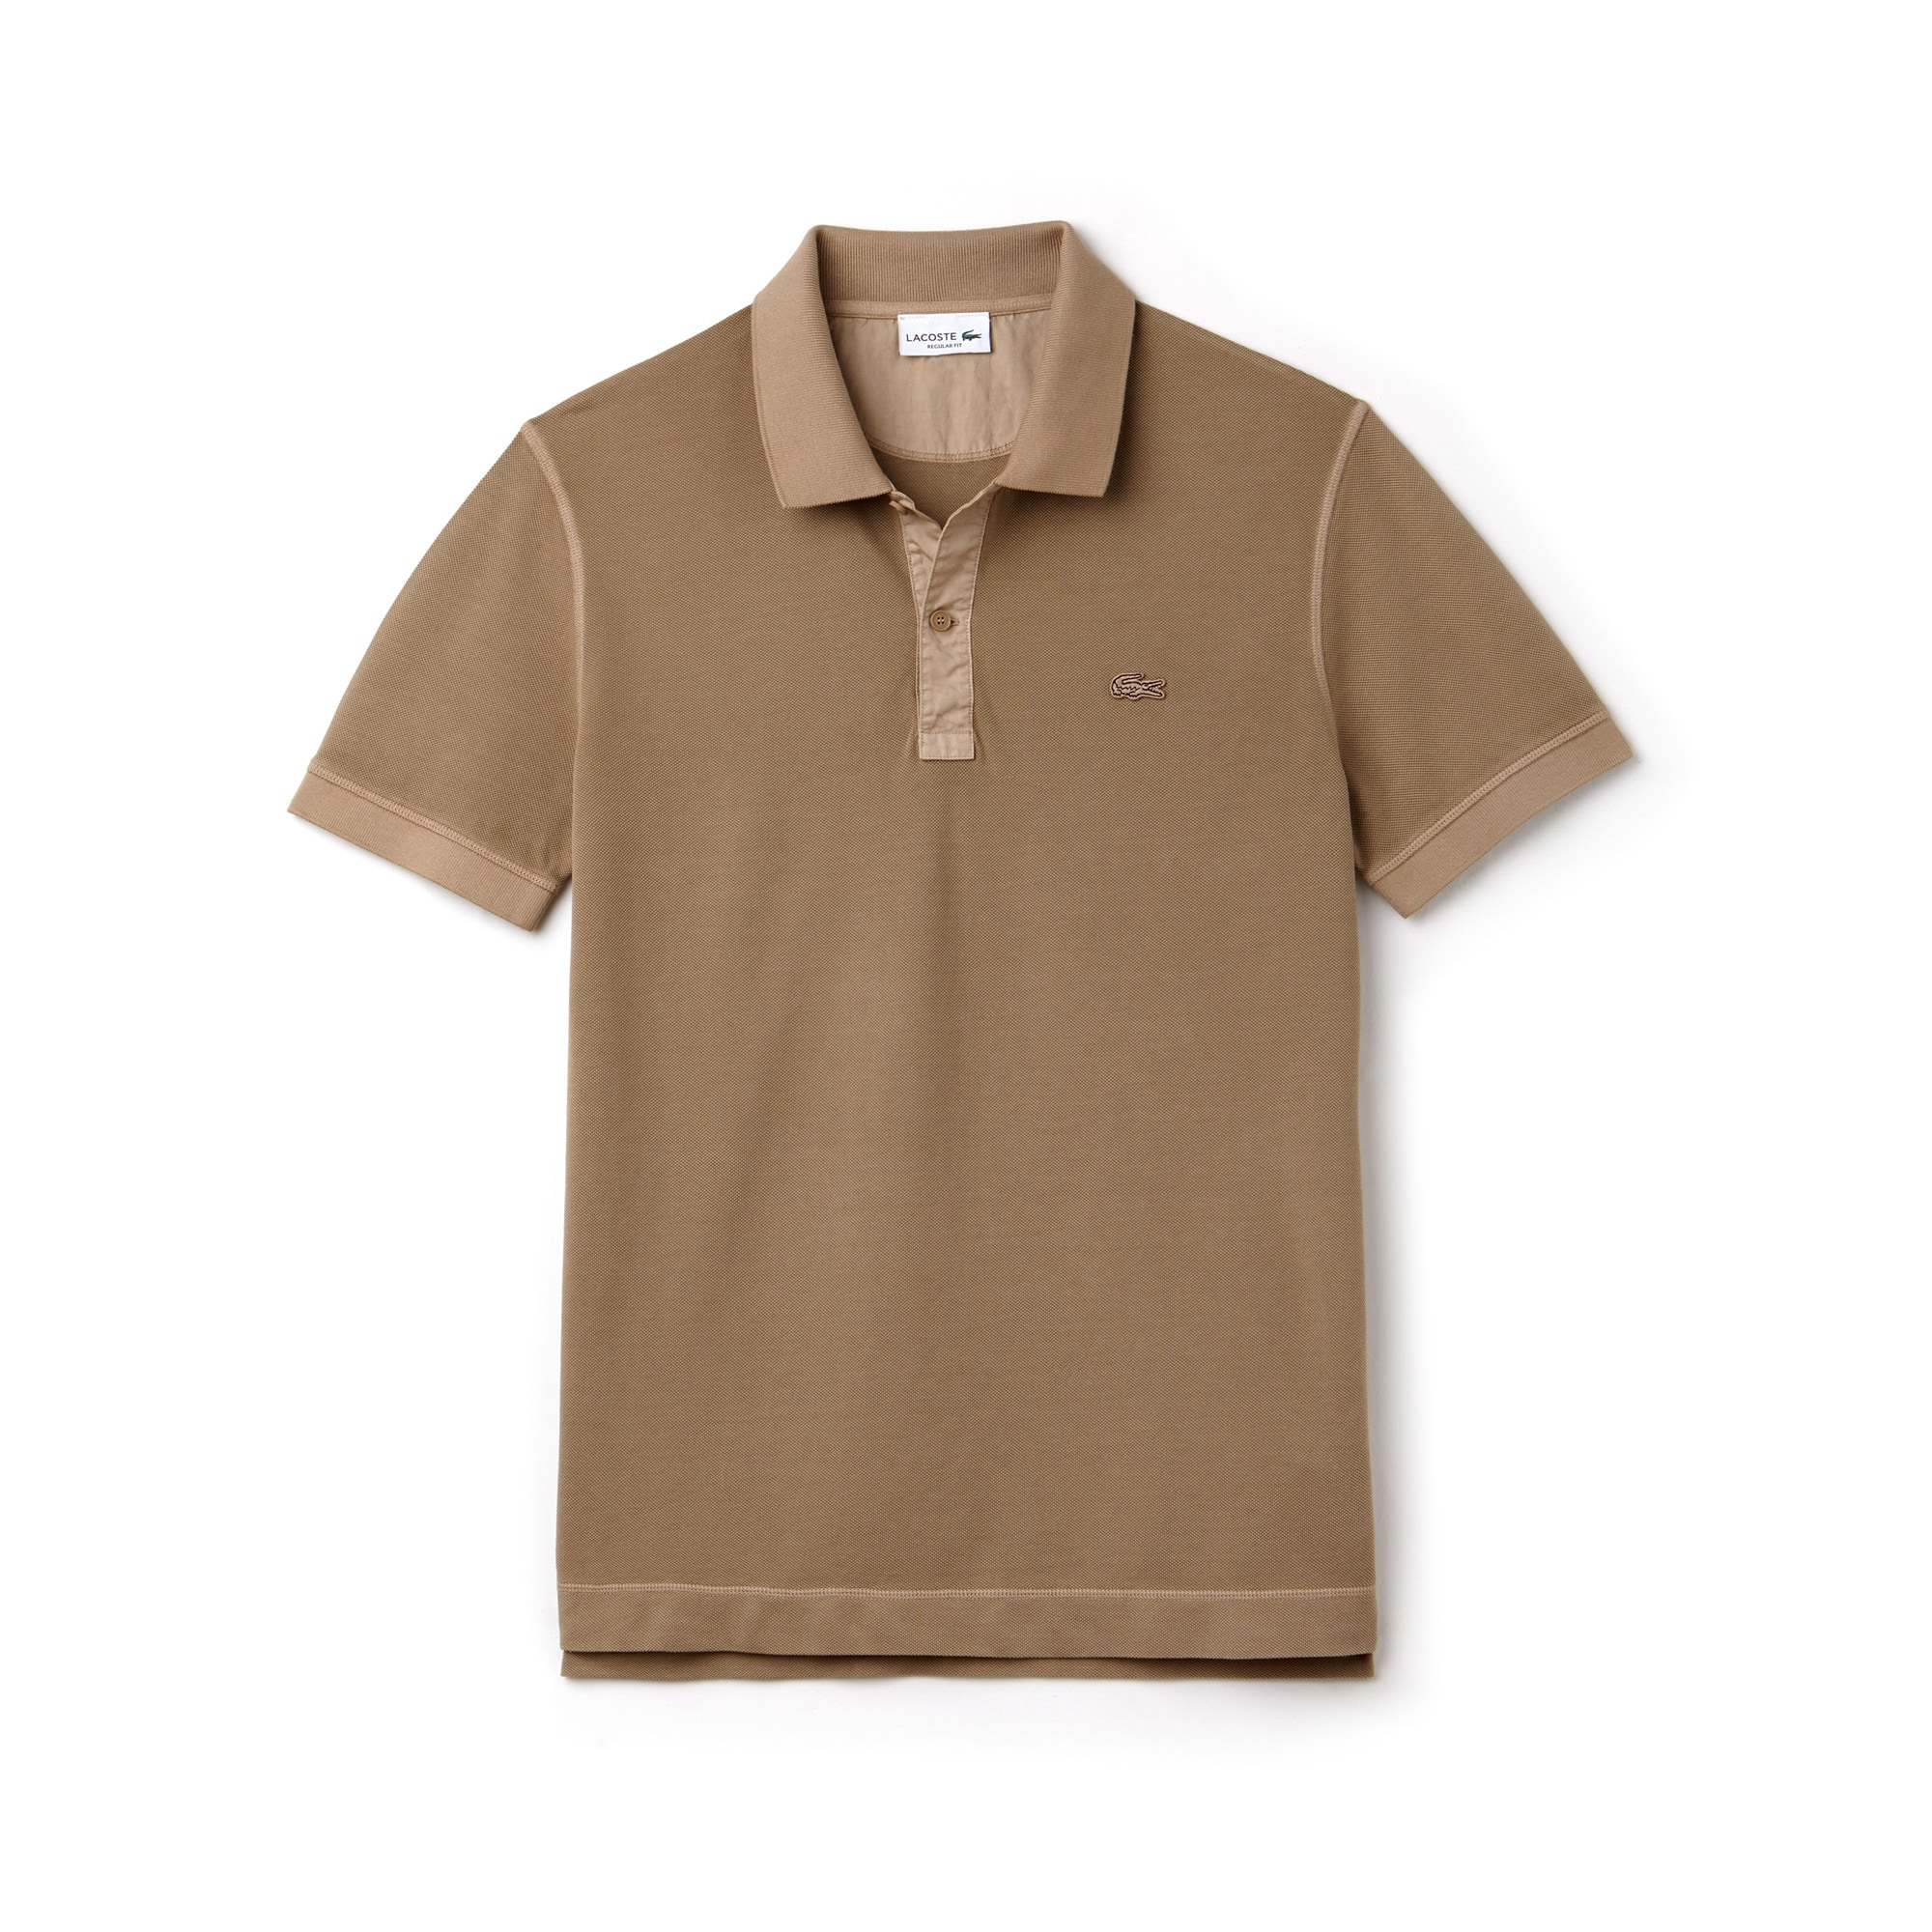 Polo regular fit Lacoste in maglia quadra tinta unita